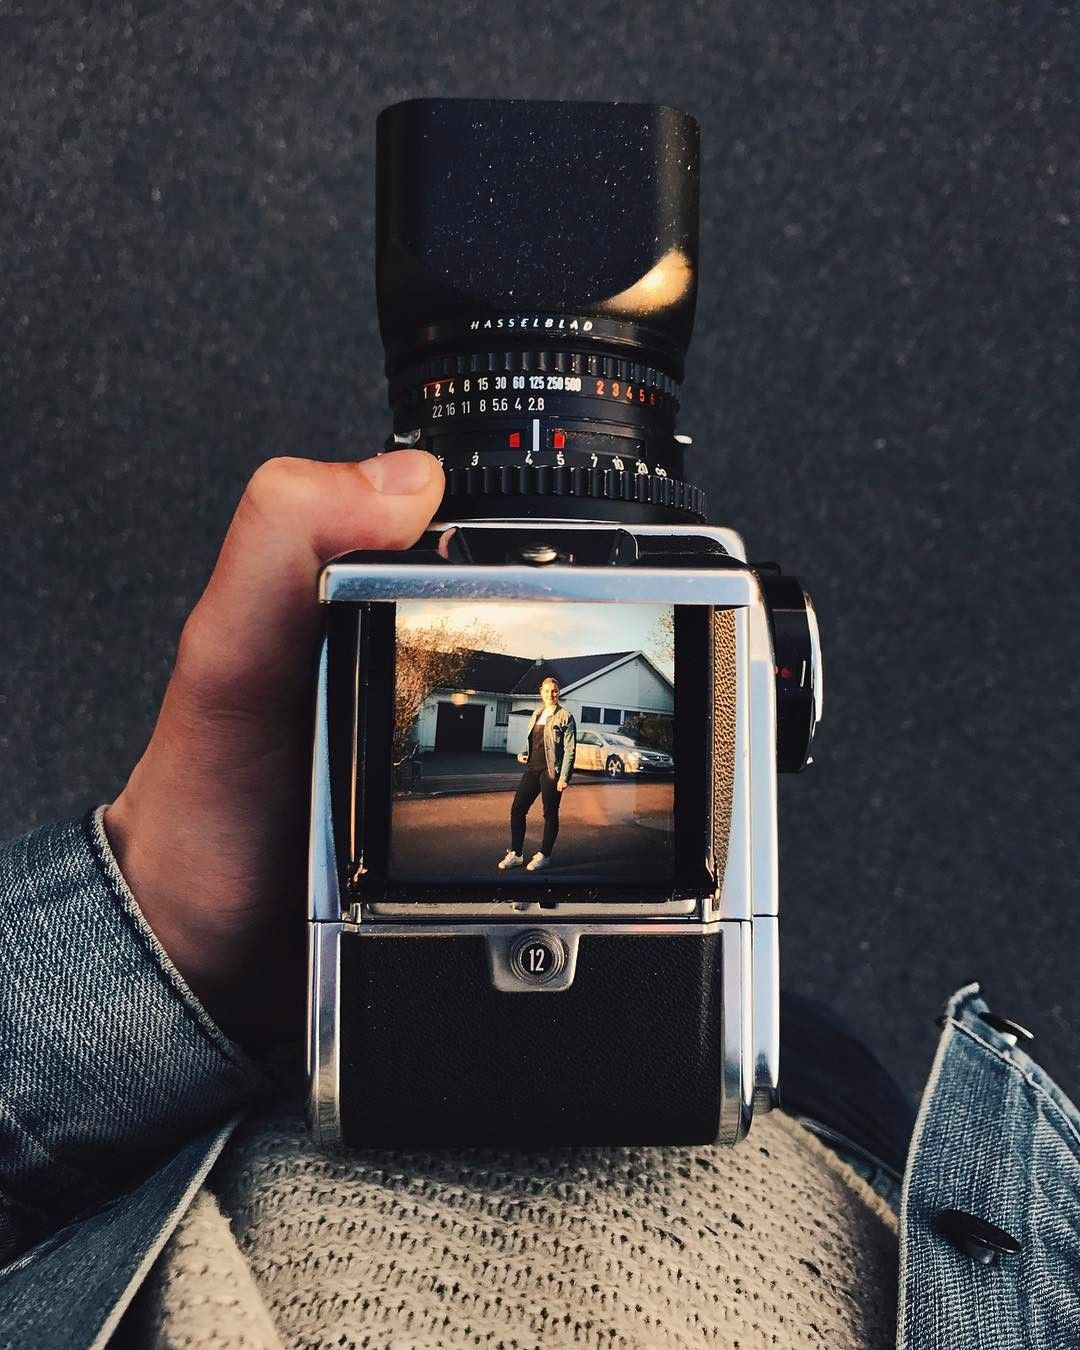 Do it for the culture! #hasselbladculture  The Hasselblad